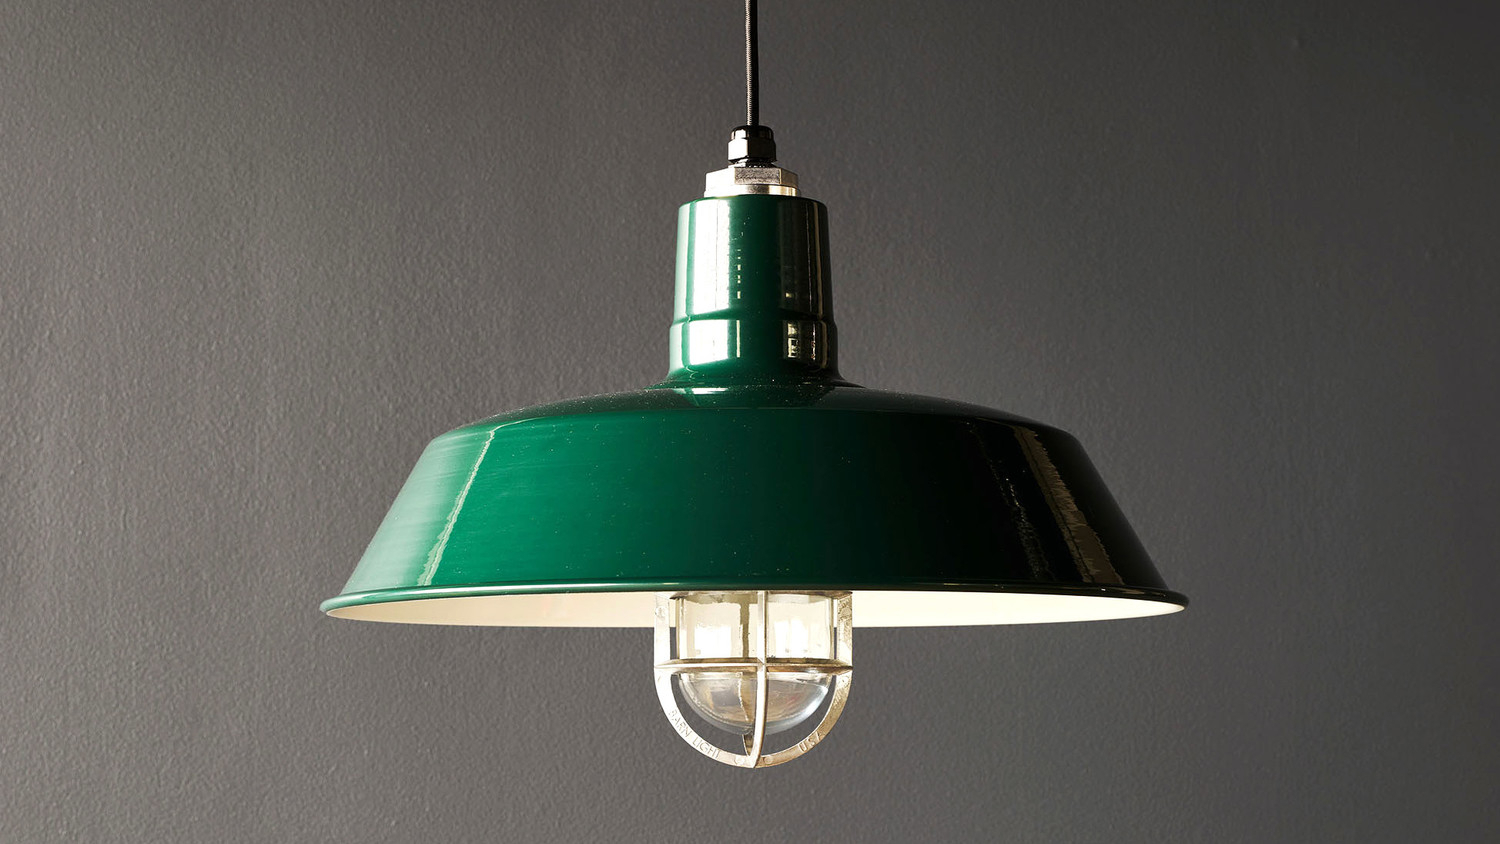 Don't Miss This Deal: Granville 2-Light Single Dome Pendant intended for Granville 2-Light Single Dome Pendants (Image 11 of 30)